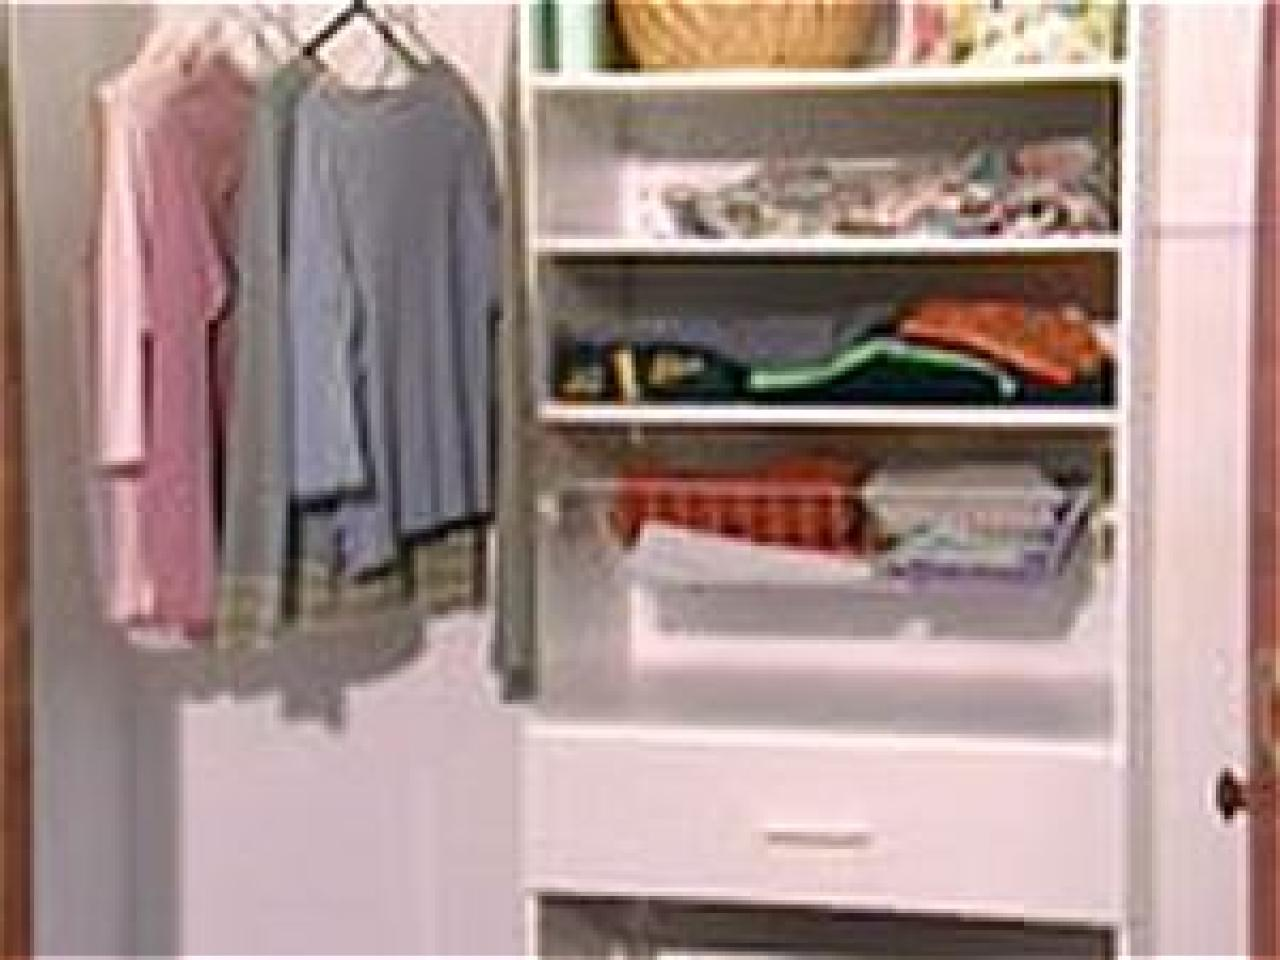 Closet Organiztion | Diy Walk in Closet | Closet Organization Systems Do It Yourself